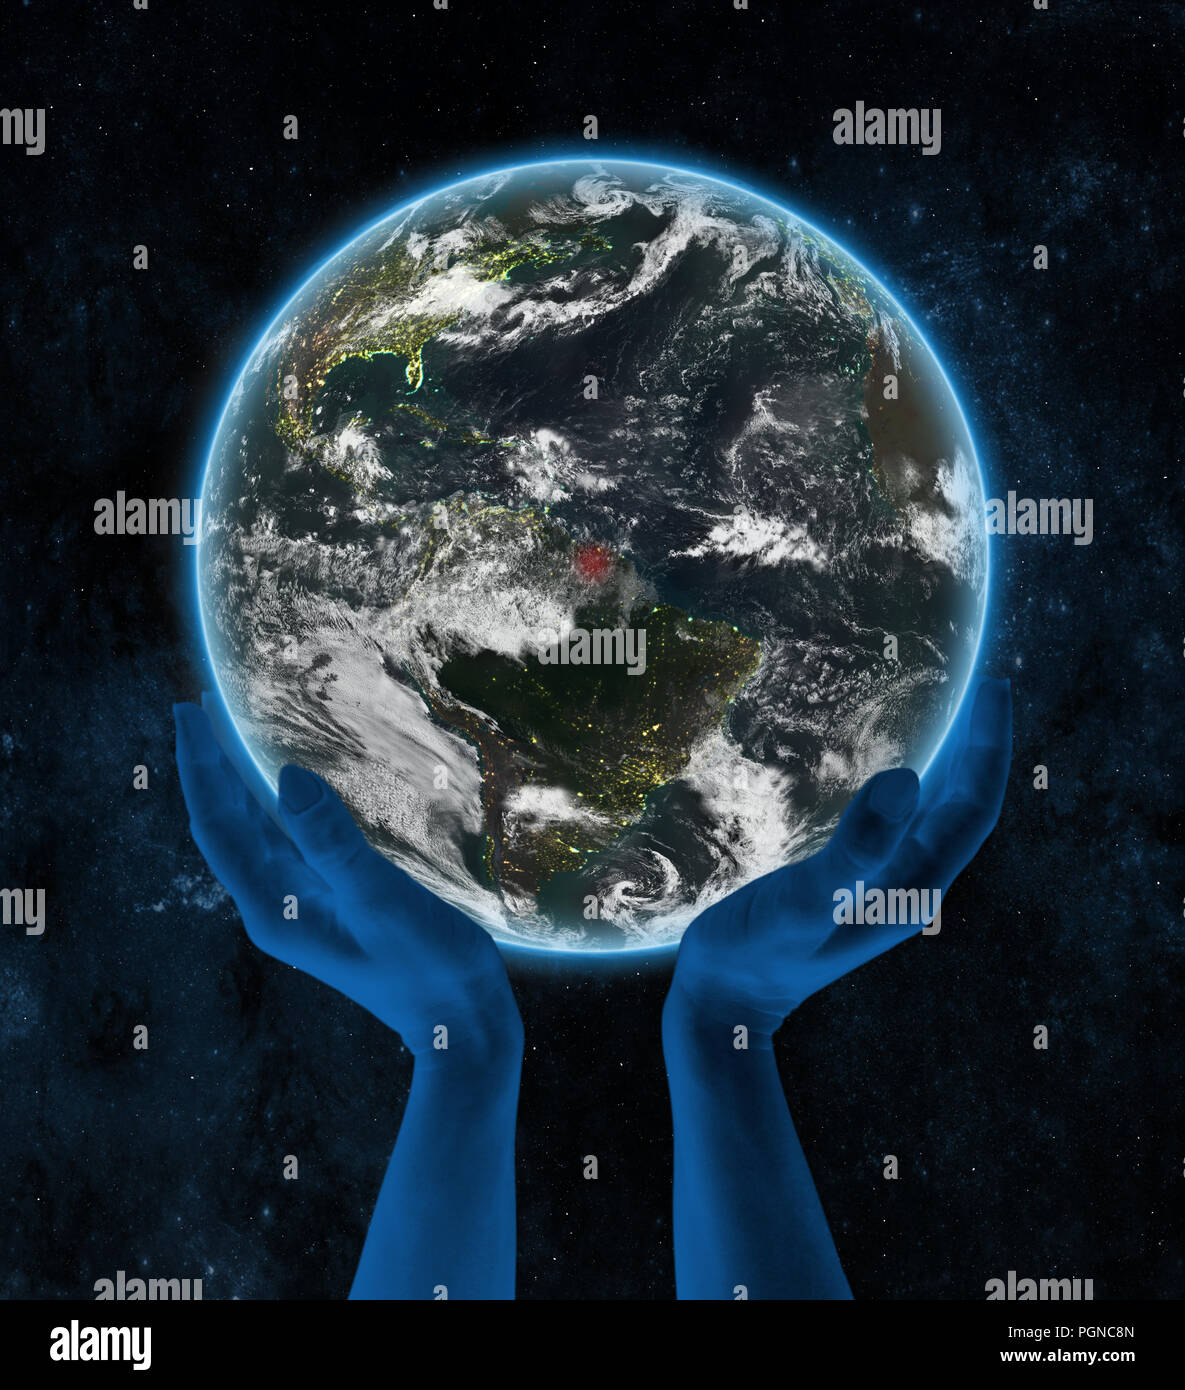 Suriname on Earth at night in hands in space. 3D illustration. - Stock Image